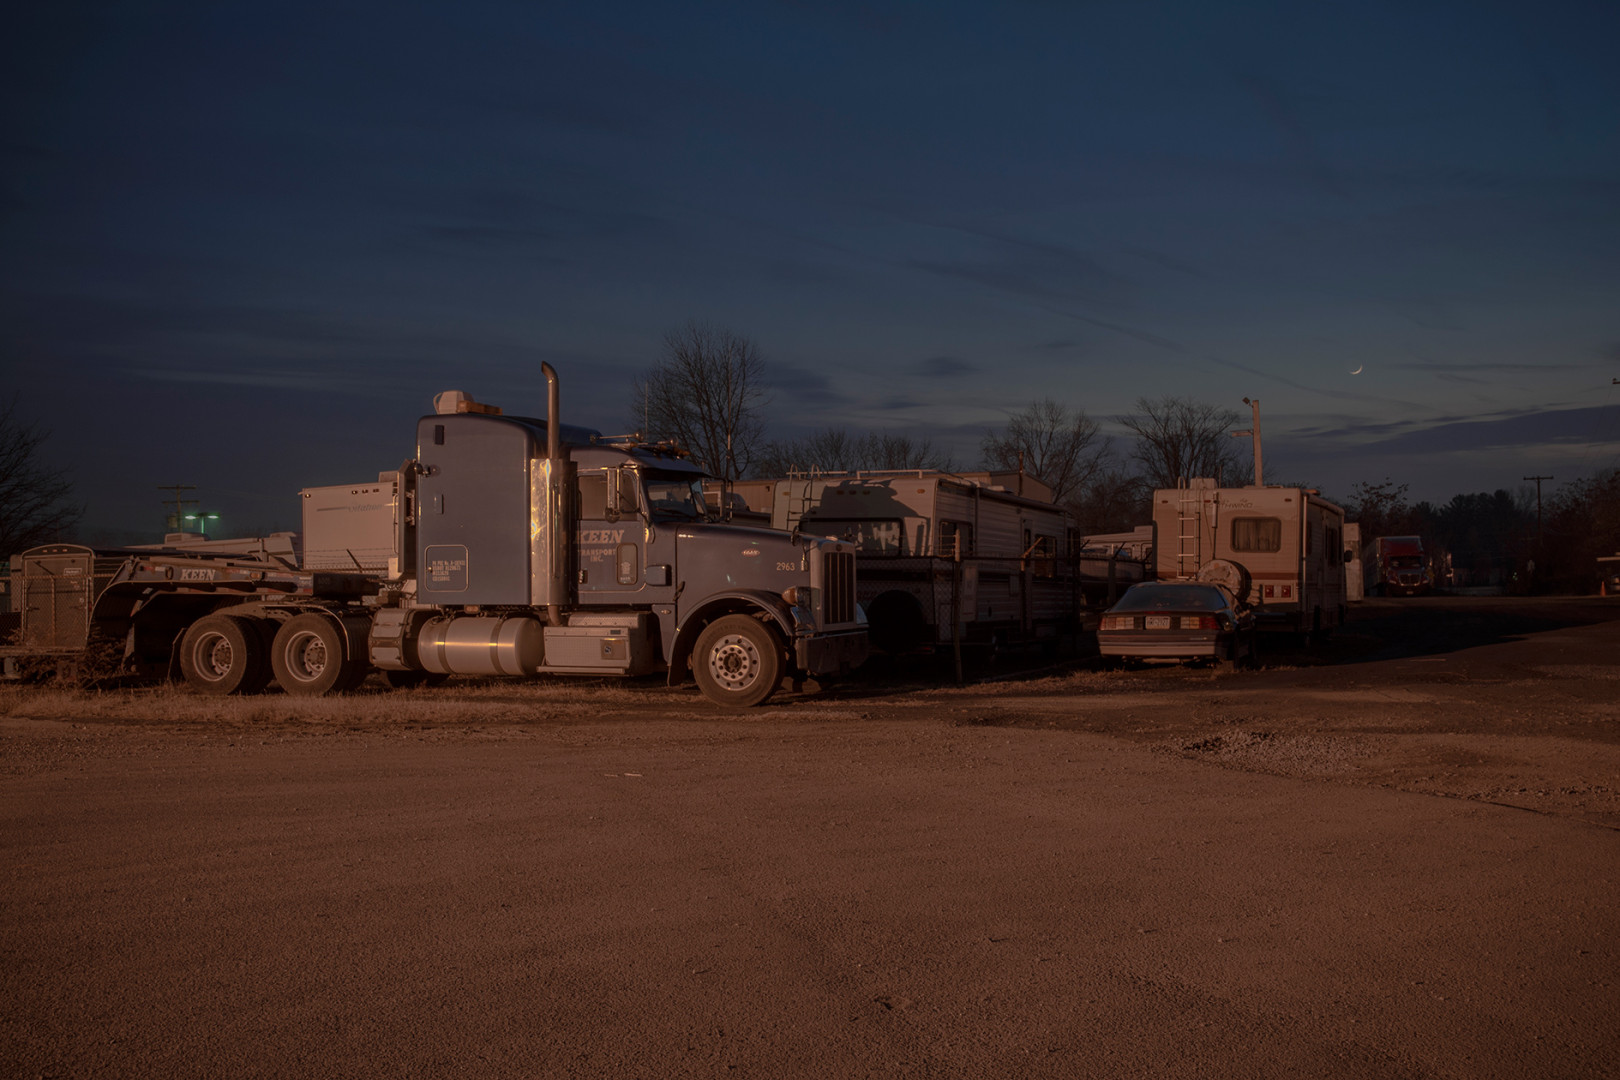 photo noir,trucks,night,long exposure